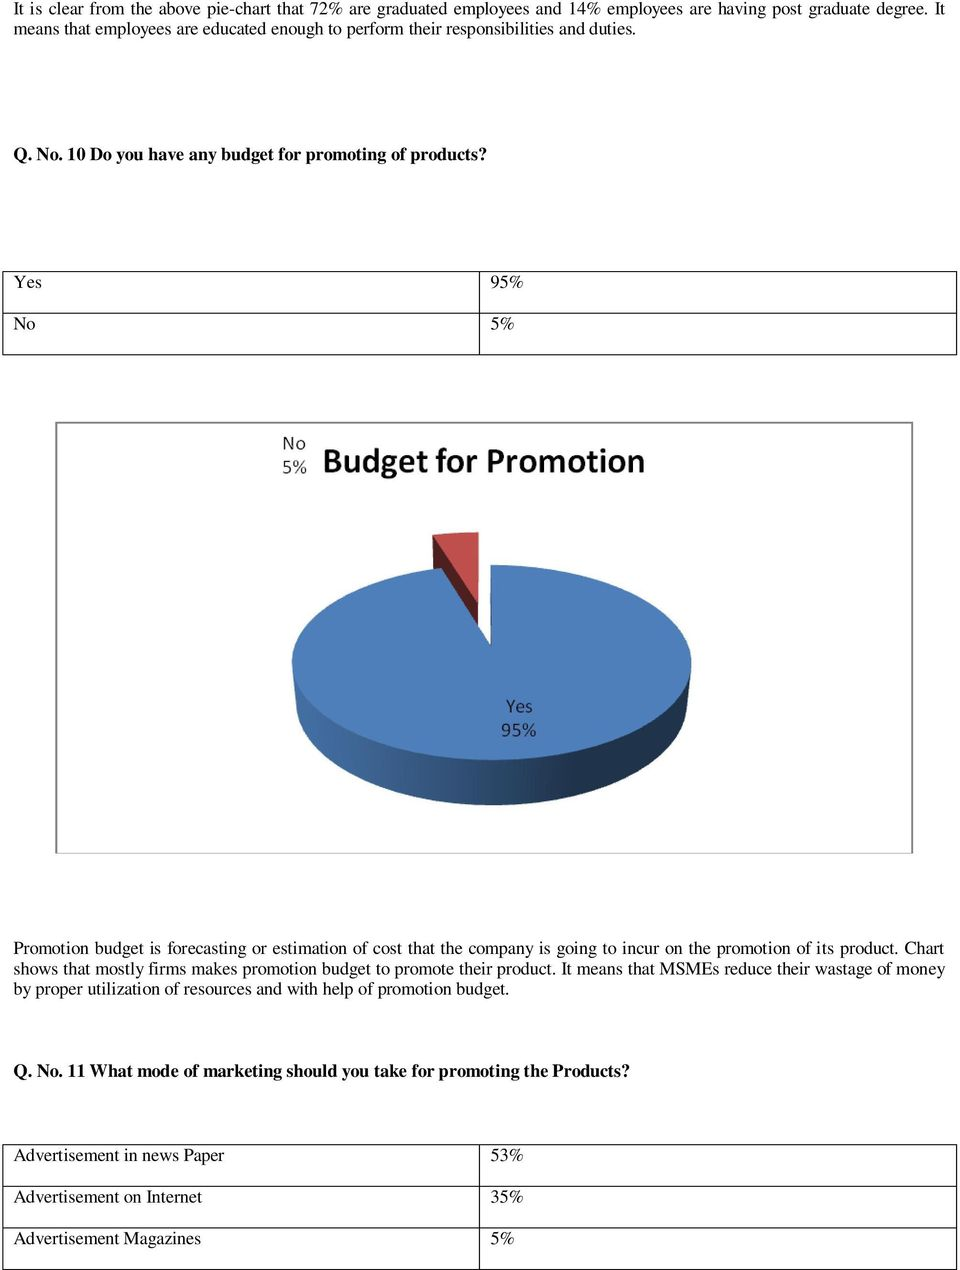 Yes 95% No 5% Promotion budget is forecasting or estimation of cost that the company is going to incur on the promotion of its product.